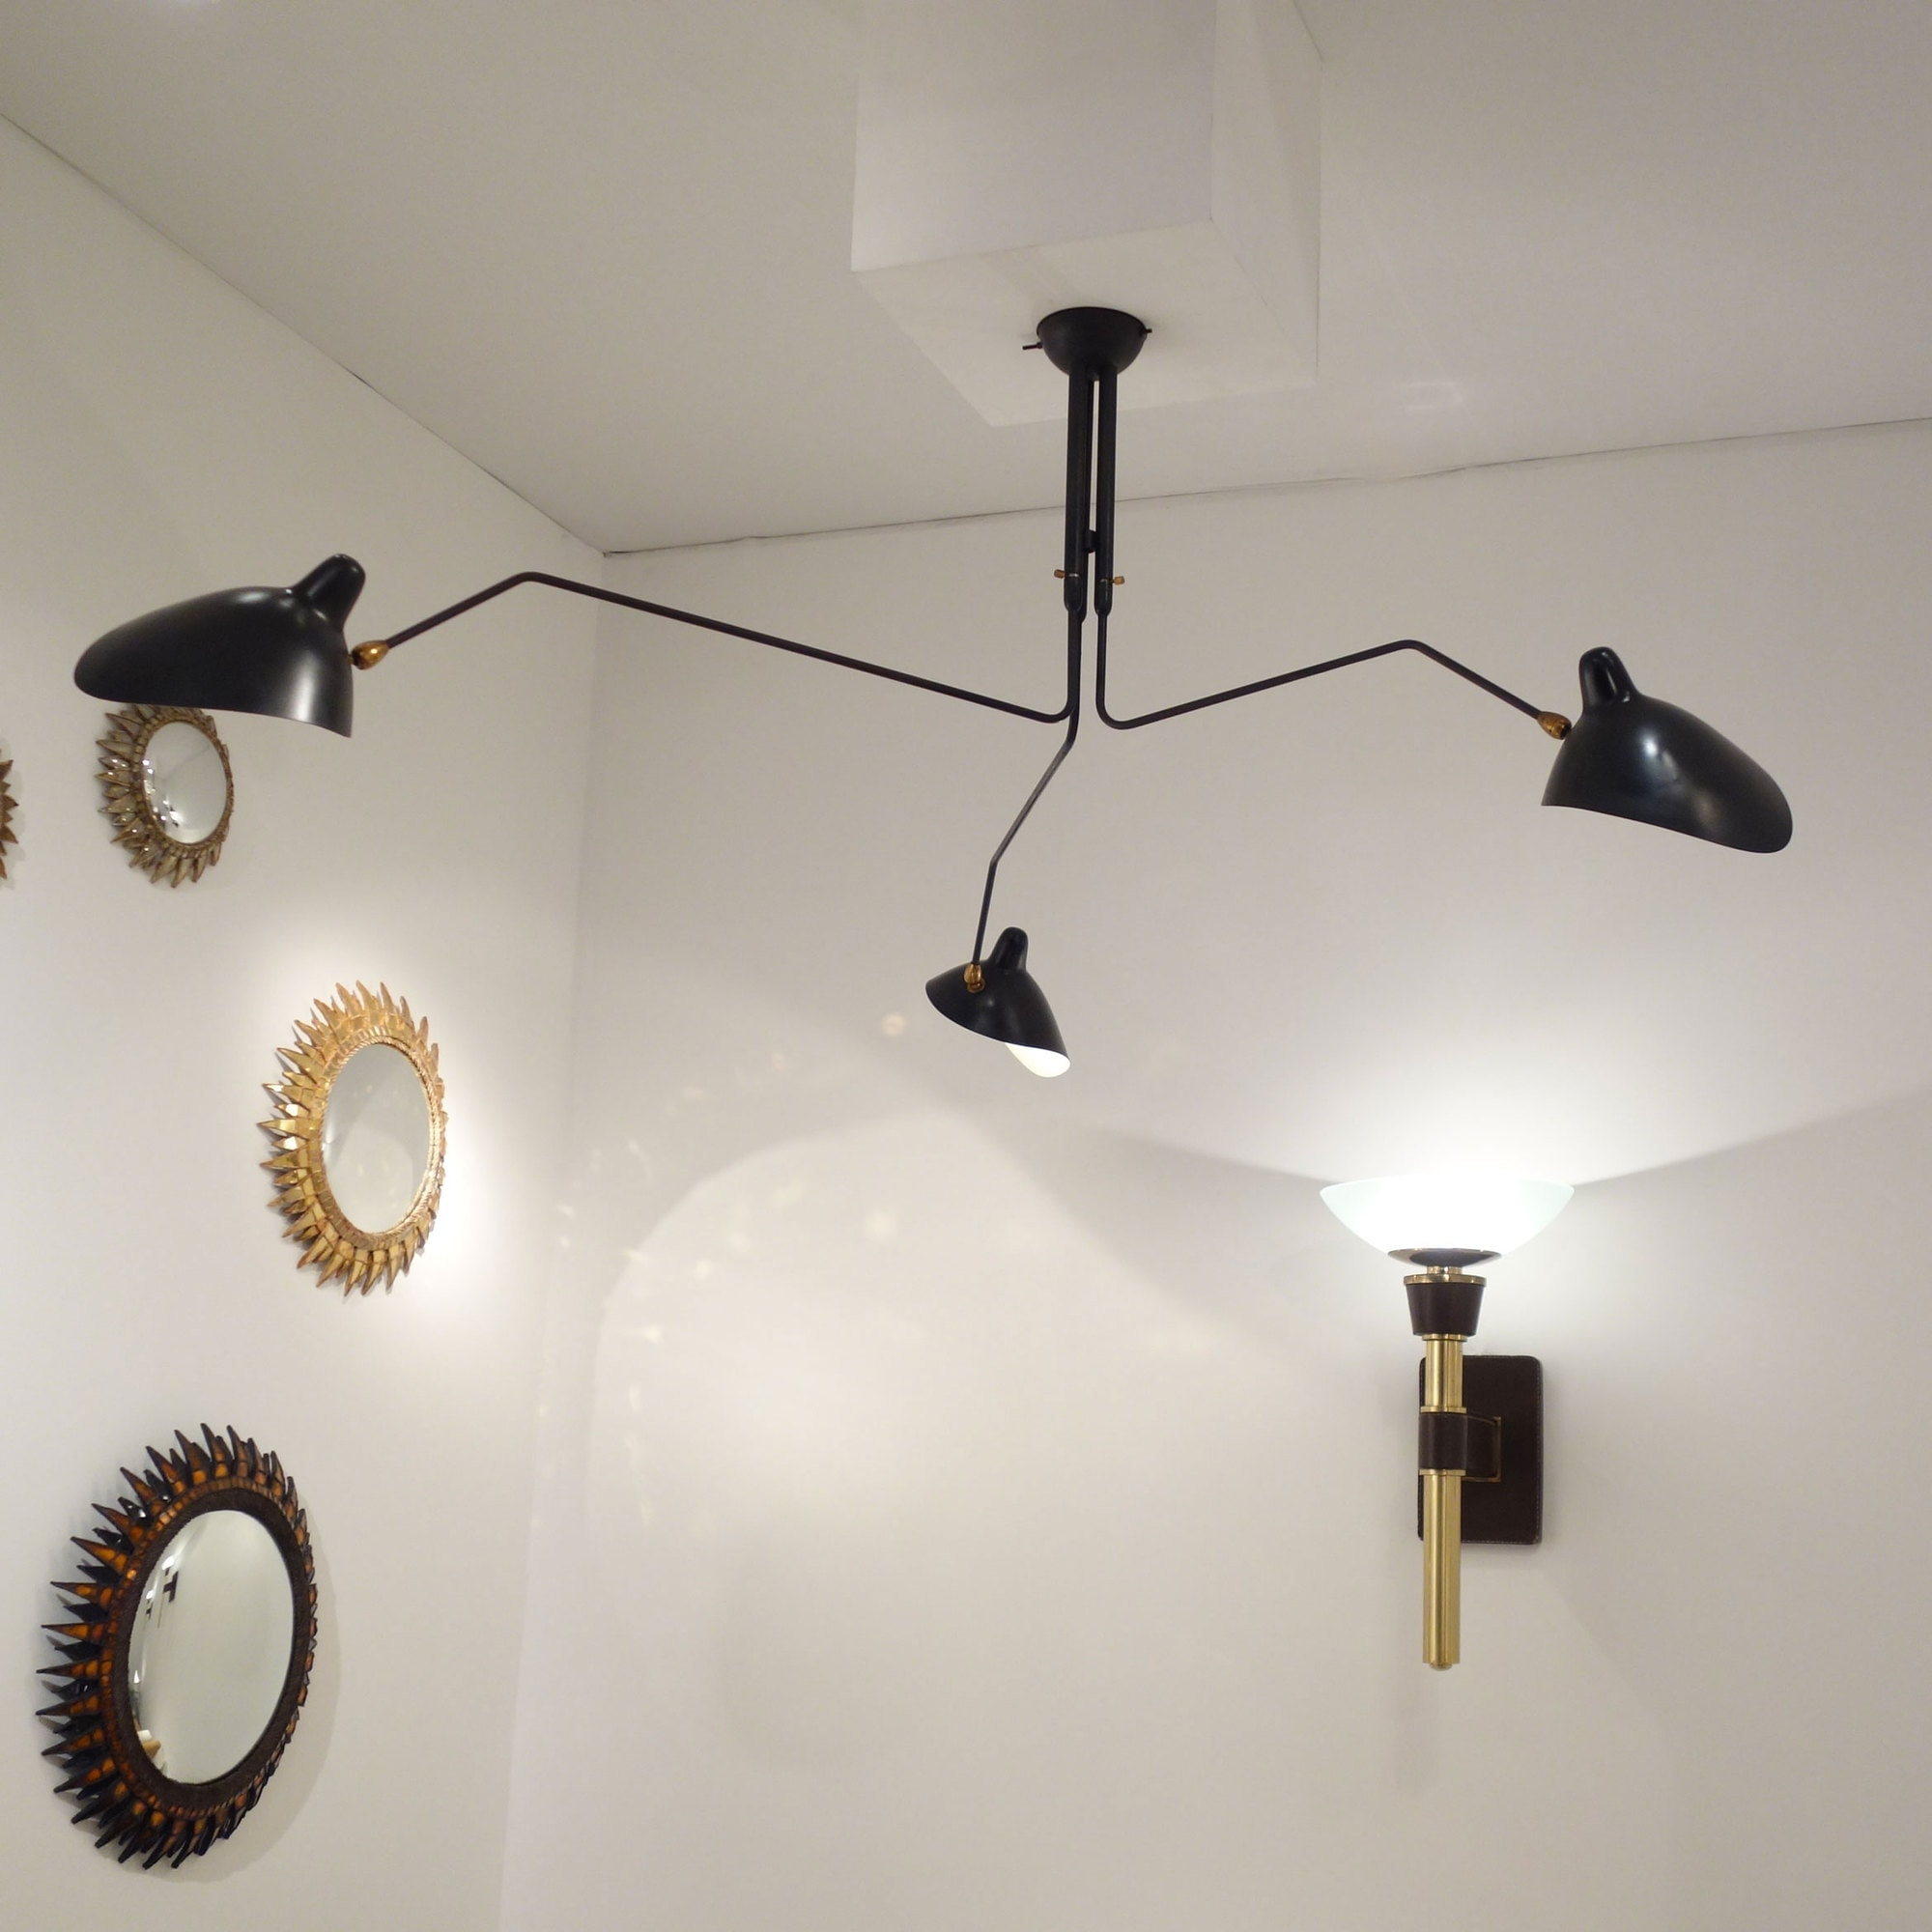 Serge Mouille, ceiling lamp with three pivoting arms, vue 02